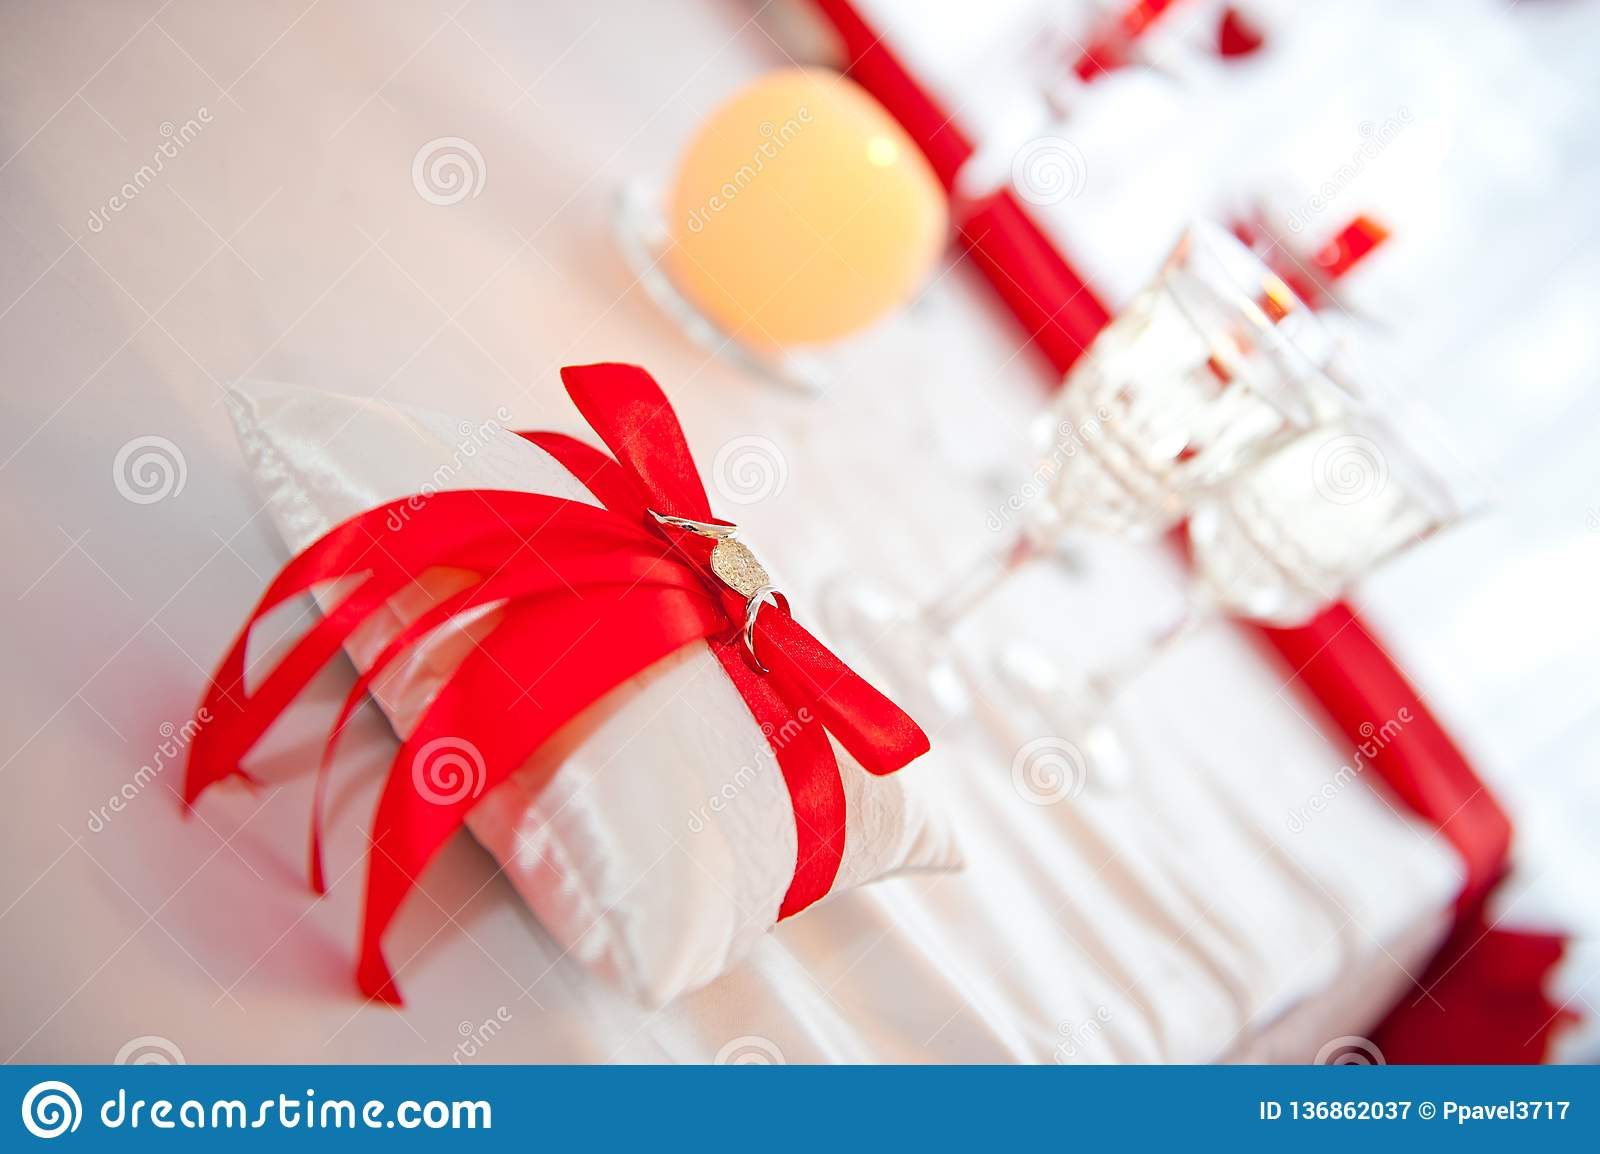 Wedding rings tied with a red ribbon with a heart on a pad shot against the background of two glasses of champagne